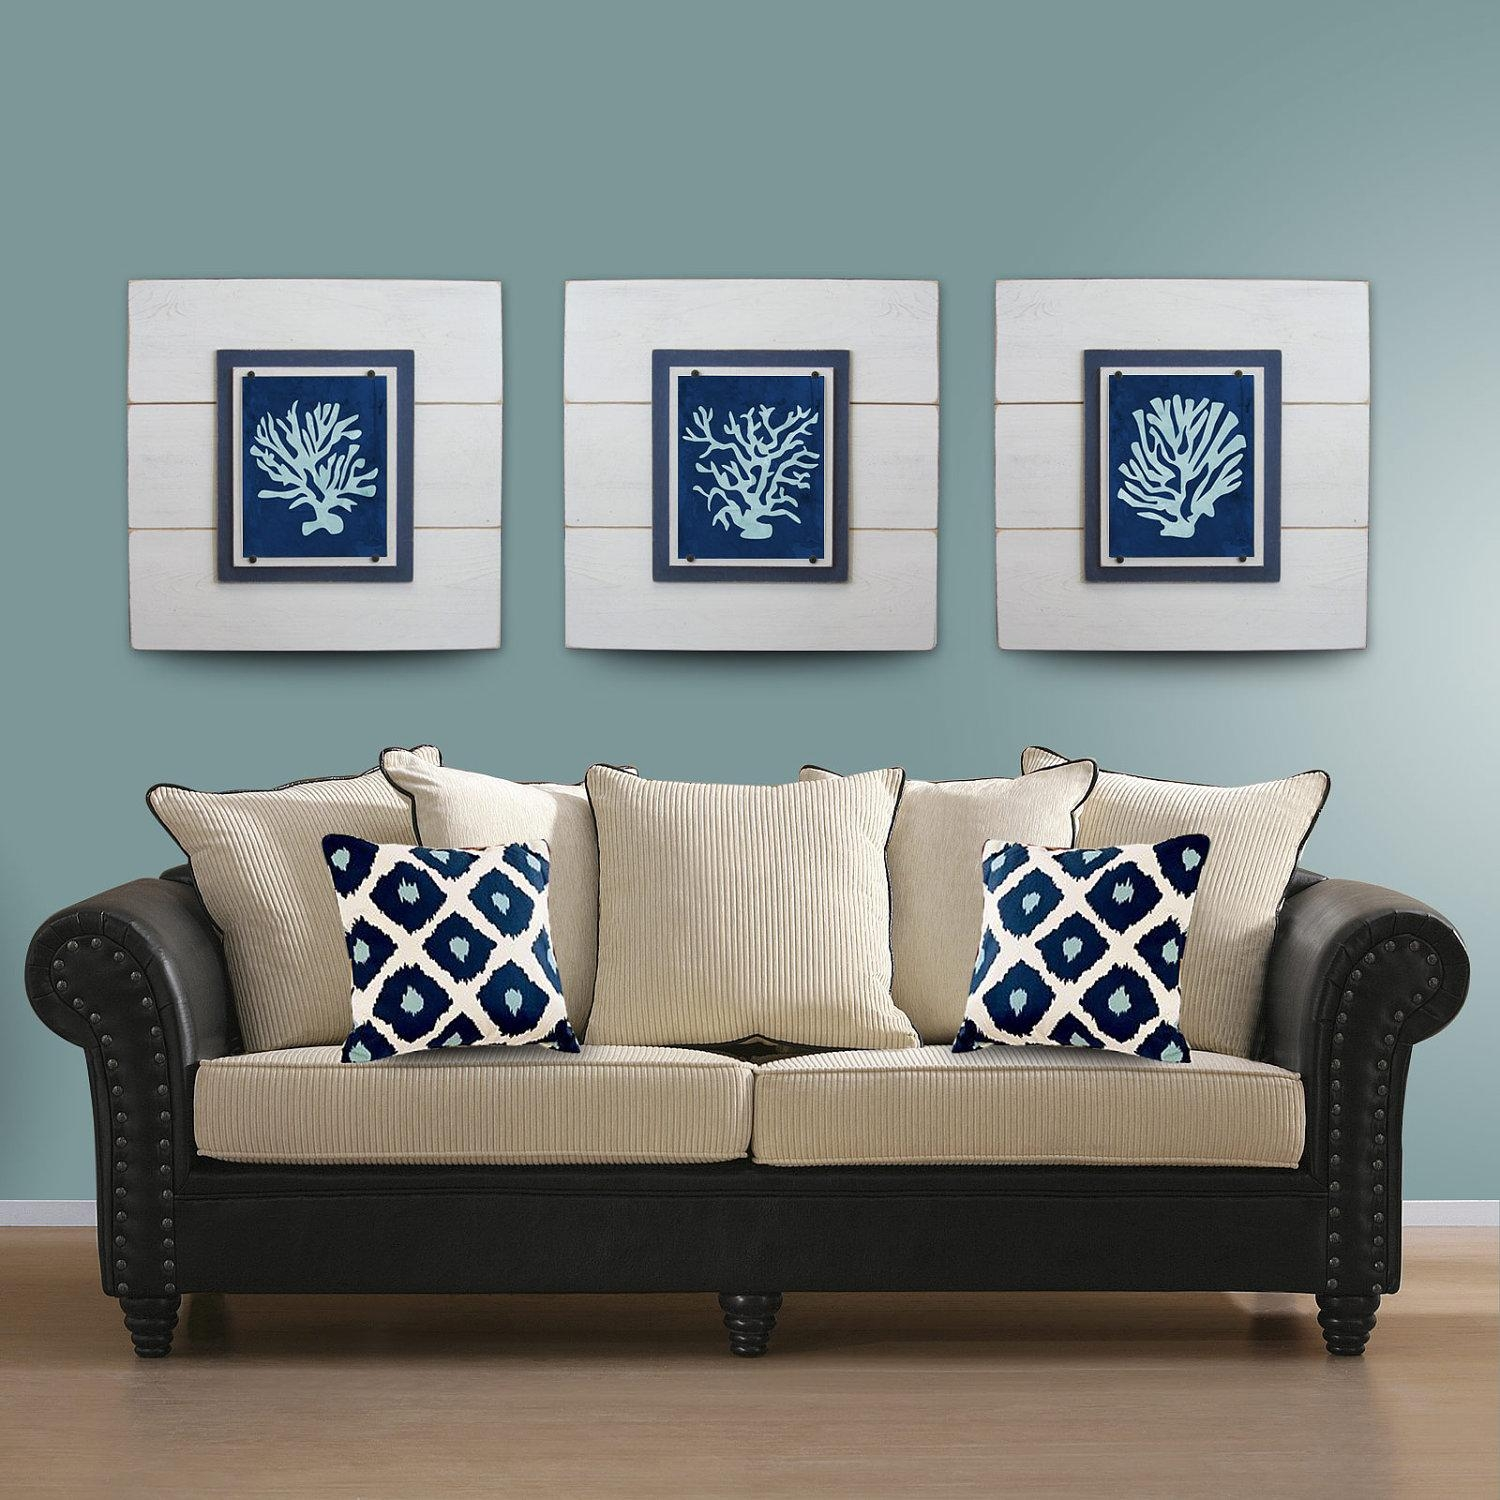 Salecoral Wall Art Set Of 3 White Framed 8X10 Xtra Large Within Wall Art Sets Of  (Image 10 of 20)